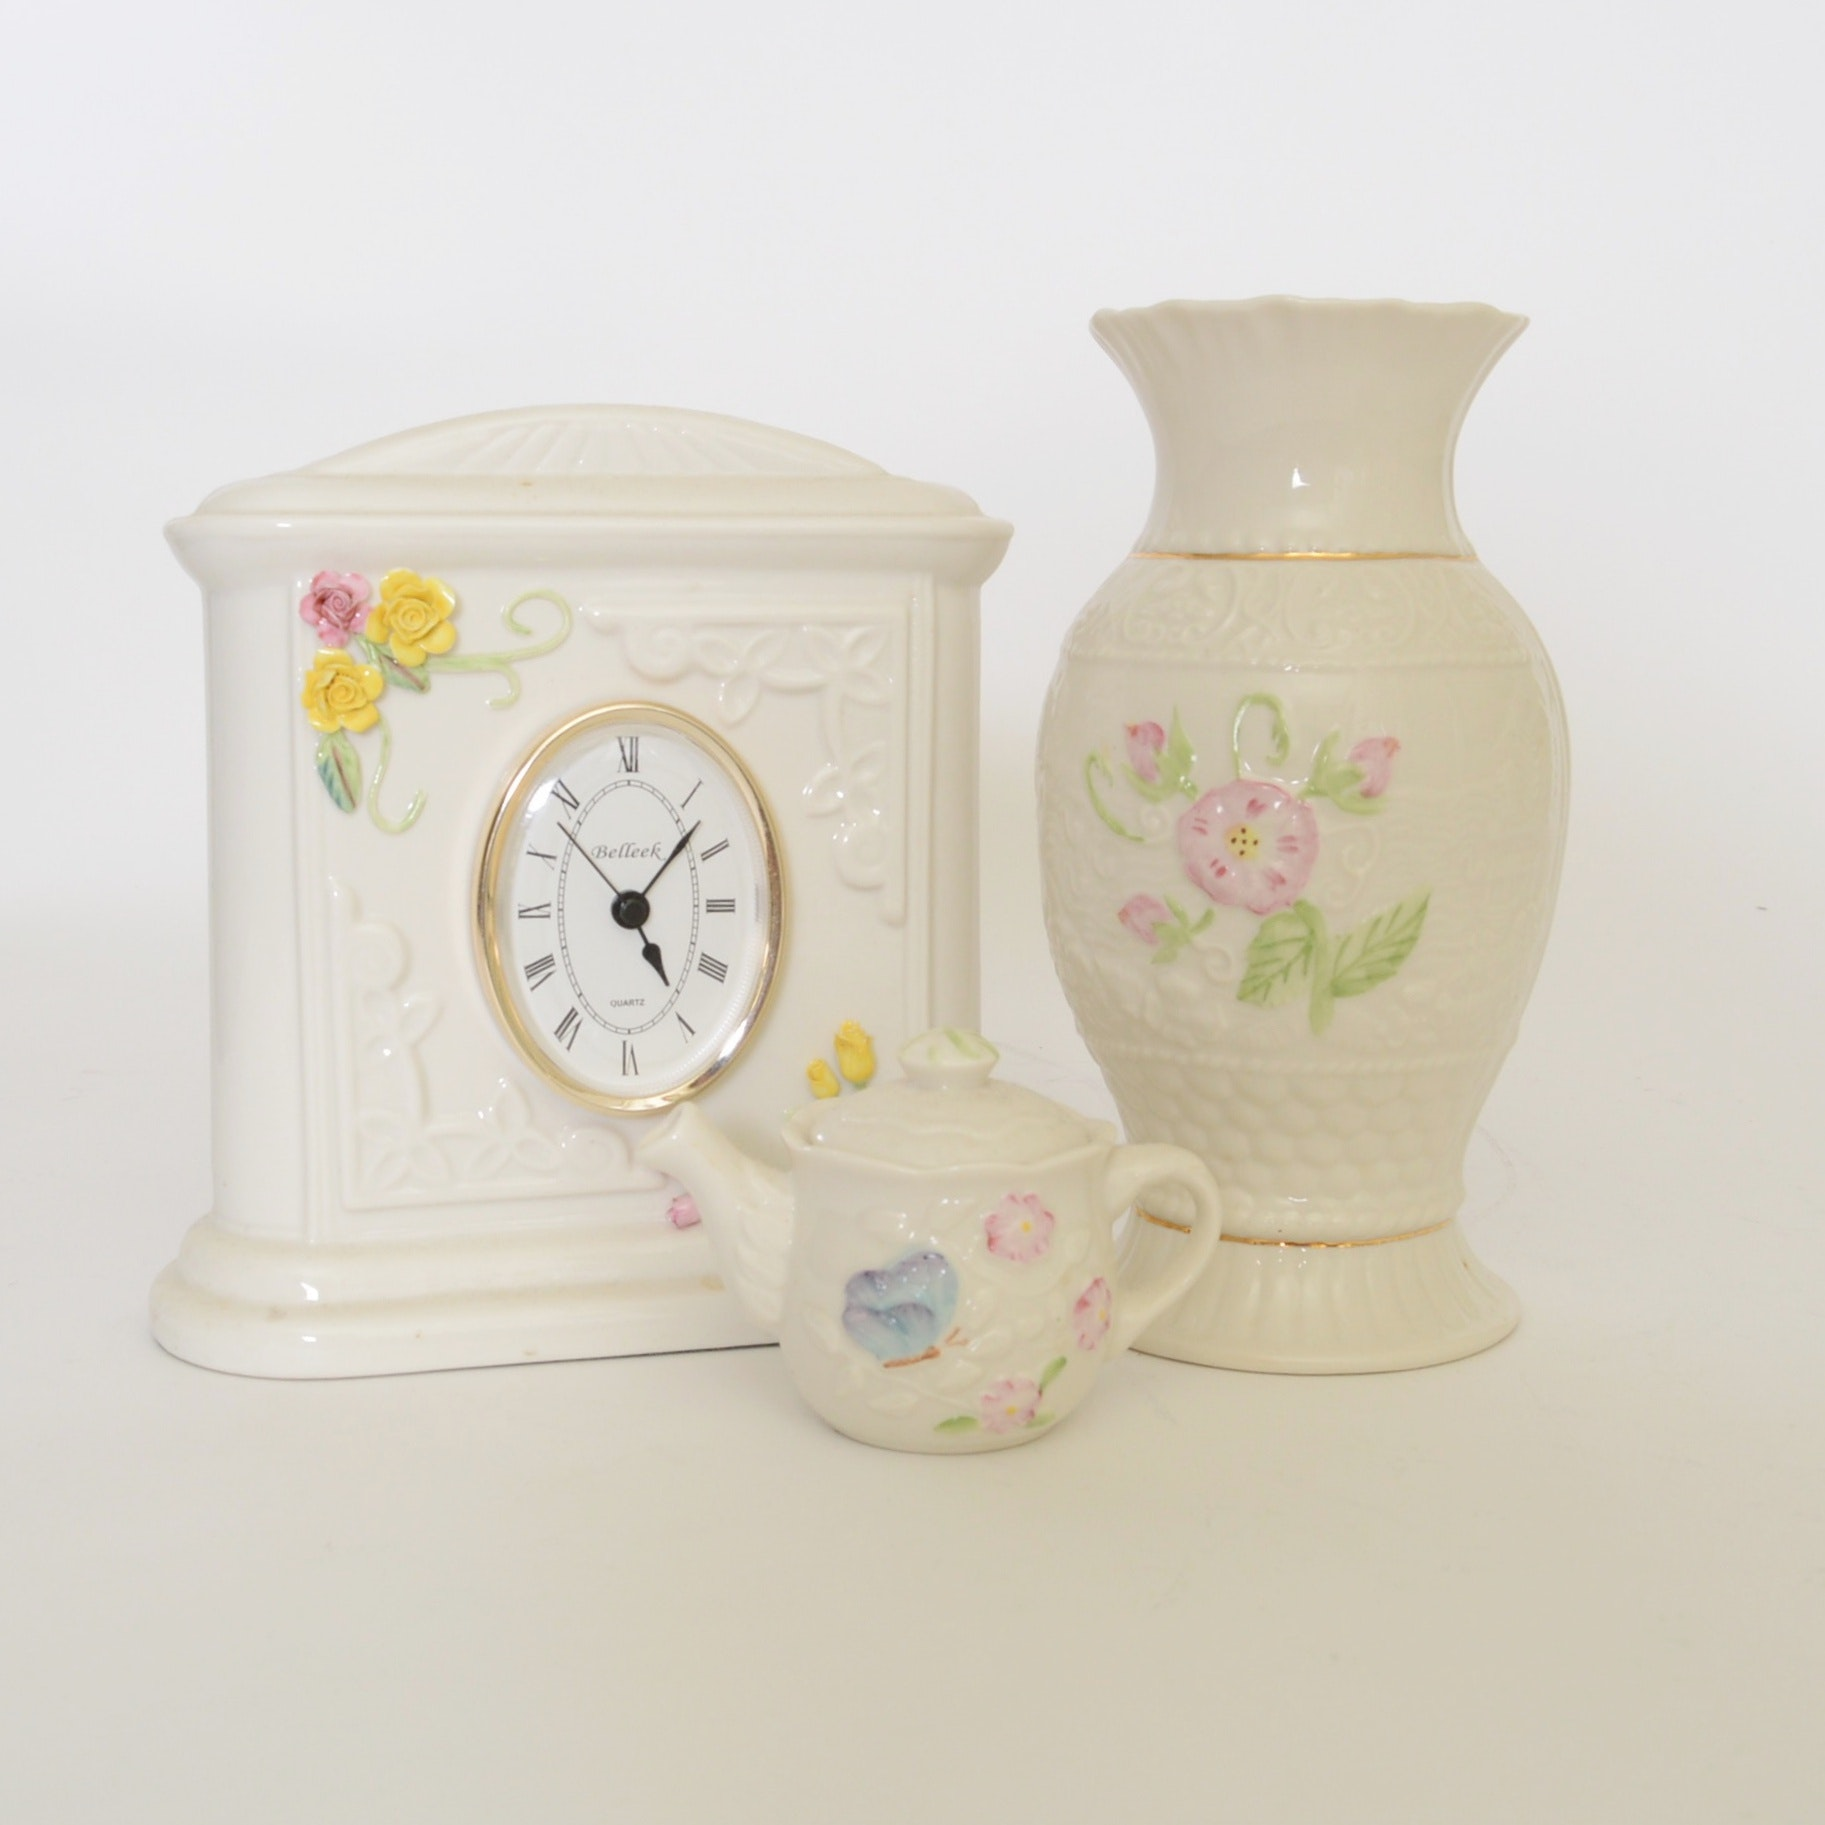 Belleek Mantel Clock, Vase and Creamer